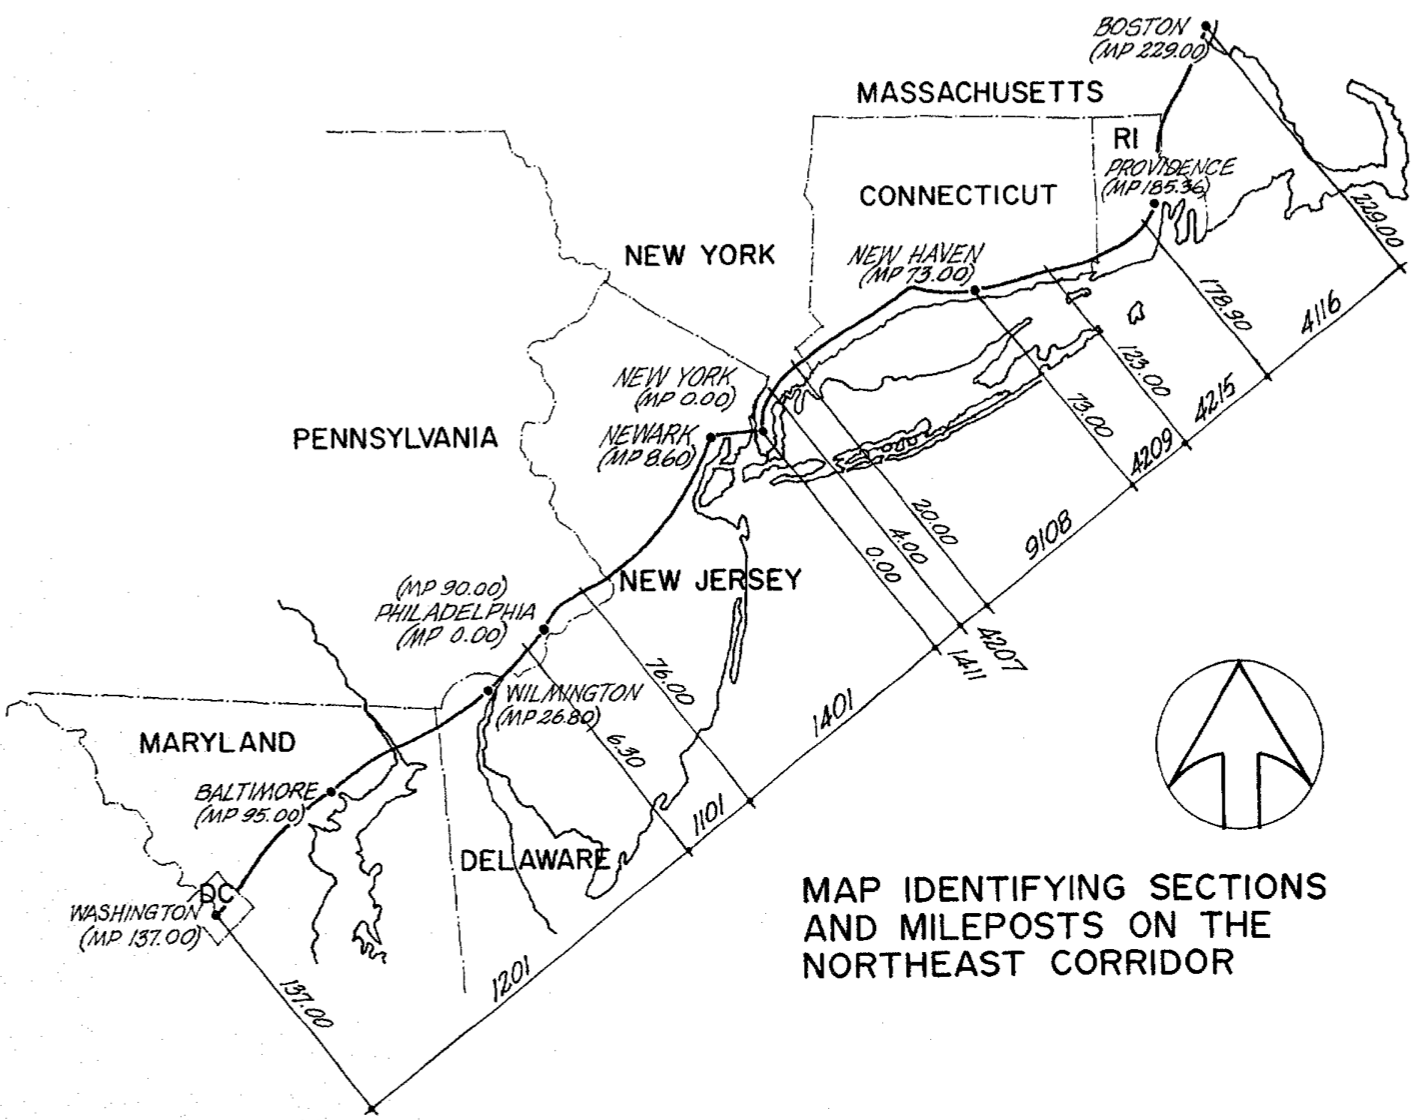 Northeast Corridor